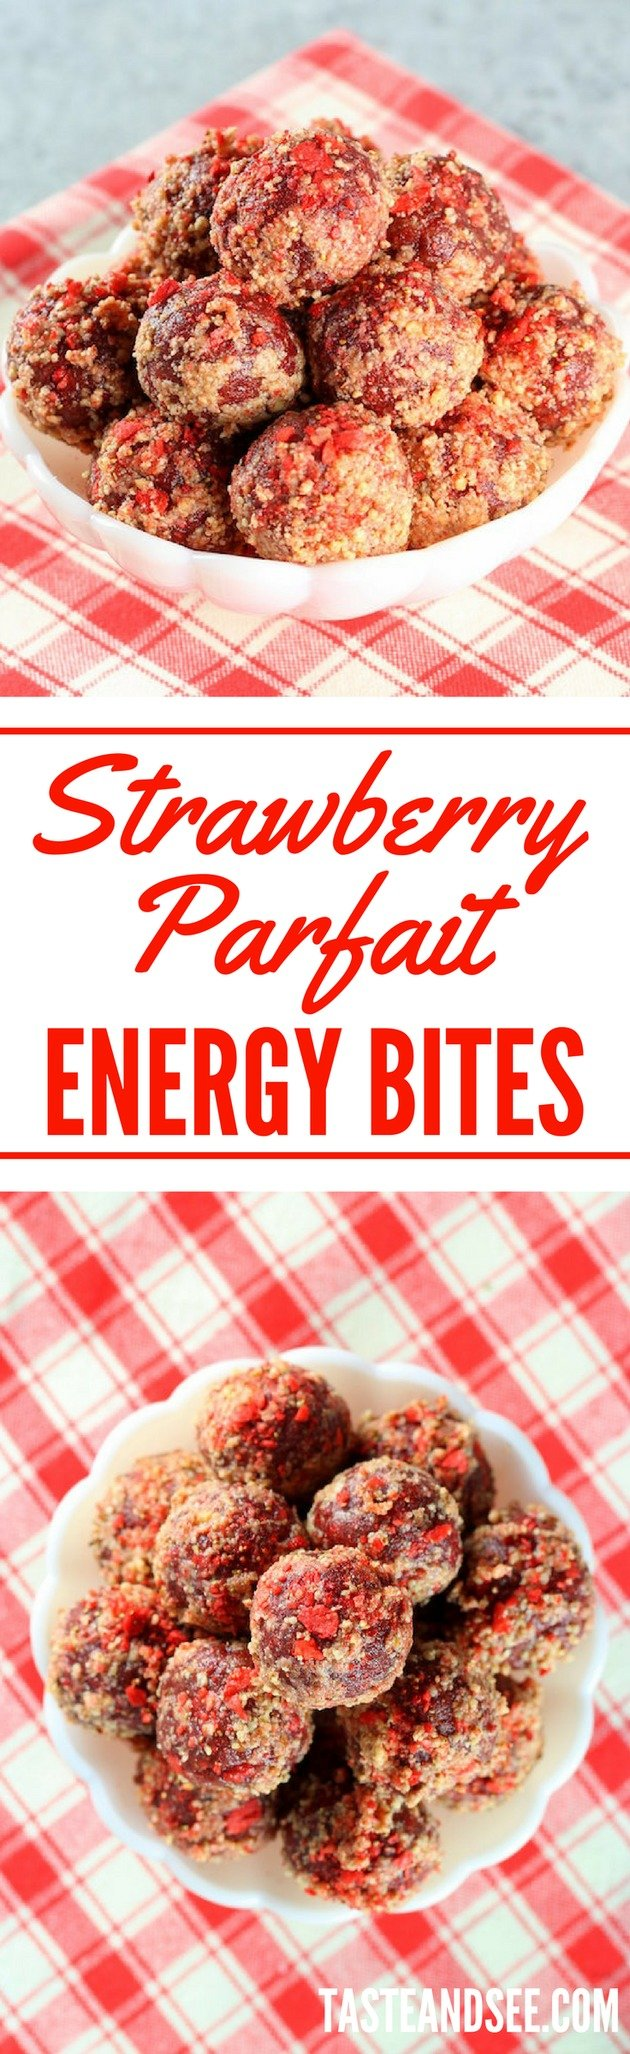 Strawberry Parfait Energy Bites are a perfect healthy snack for all ages!  #nobake #glutenfree #mealprep #tasteandsee || https://tasteandsee.com ||